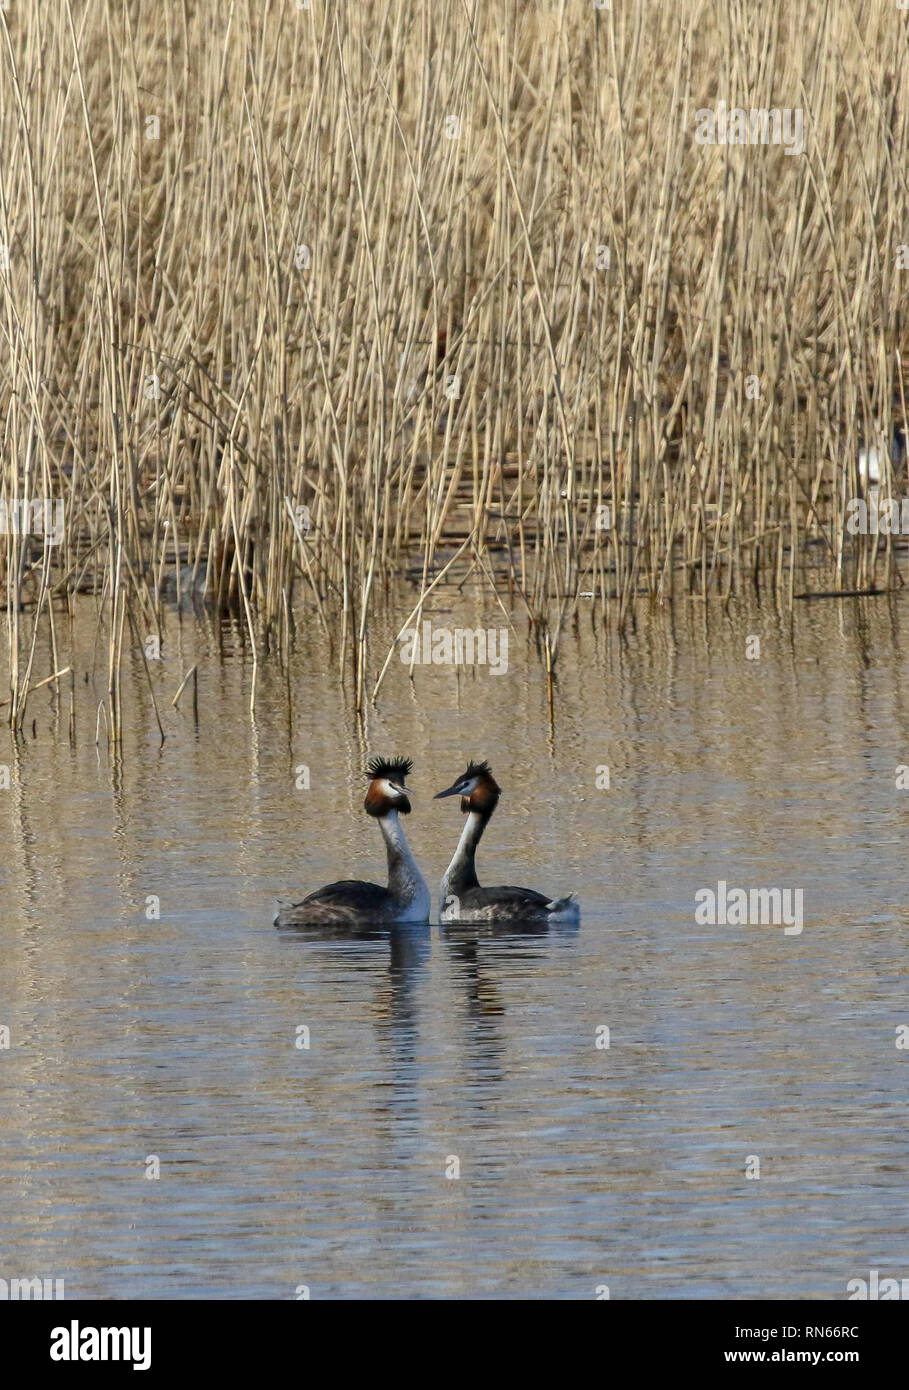 Oxford Island, Lough Neagh, Northern Ireland. 17 February 2019. UK weather - long sunny spells this afternoon on a spring-like day despite the strong breeze. The good weather saw plenty of people out making the most of the weekend. Courting weather for great-crested grebes. Credit: David Hunter/Alamy Live News. - Stock Image